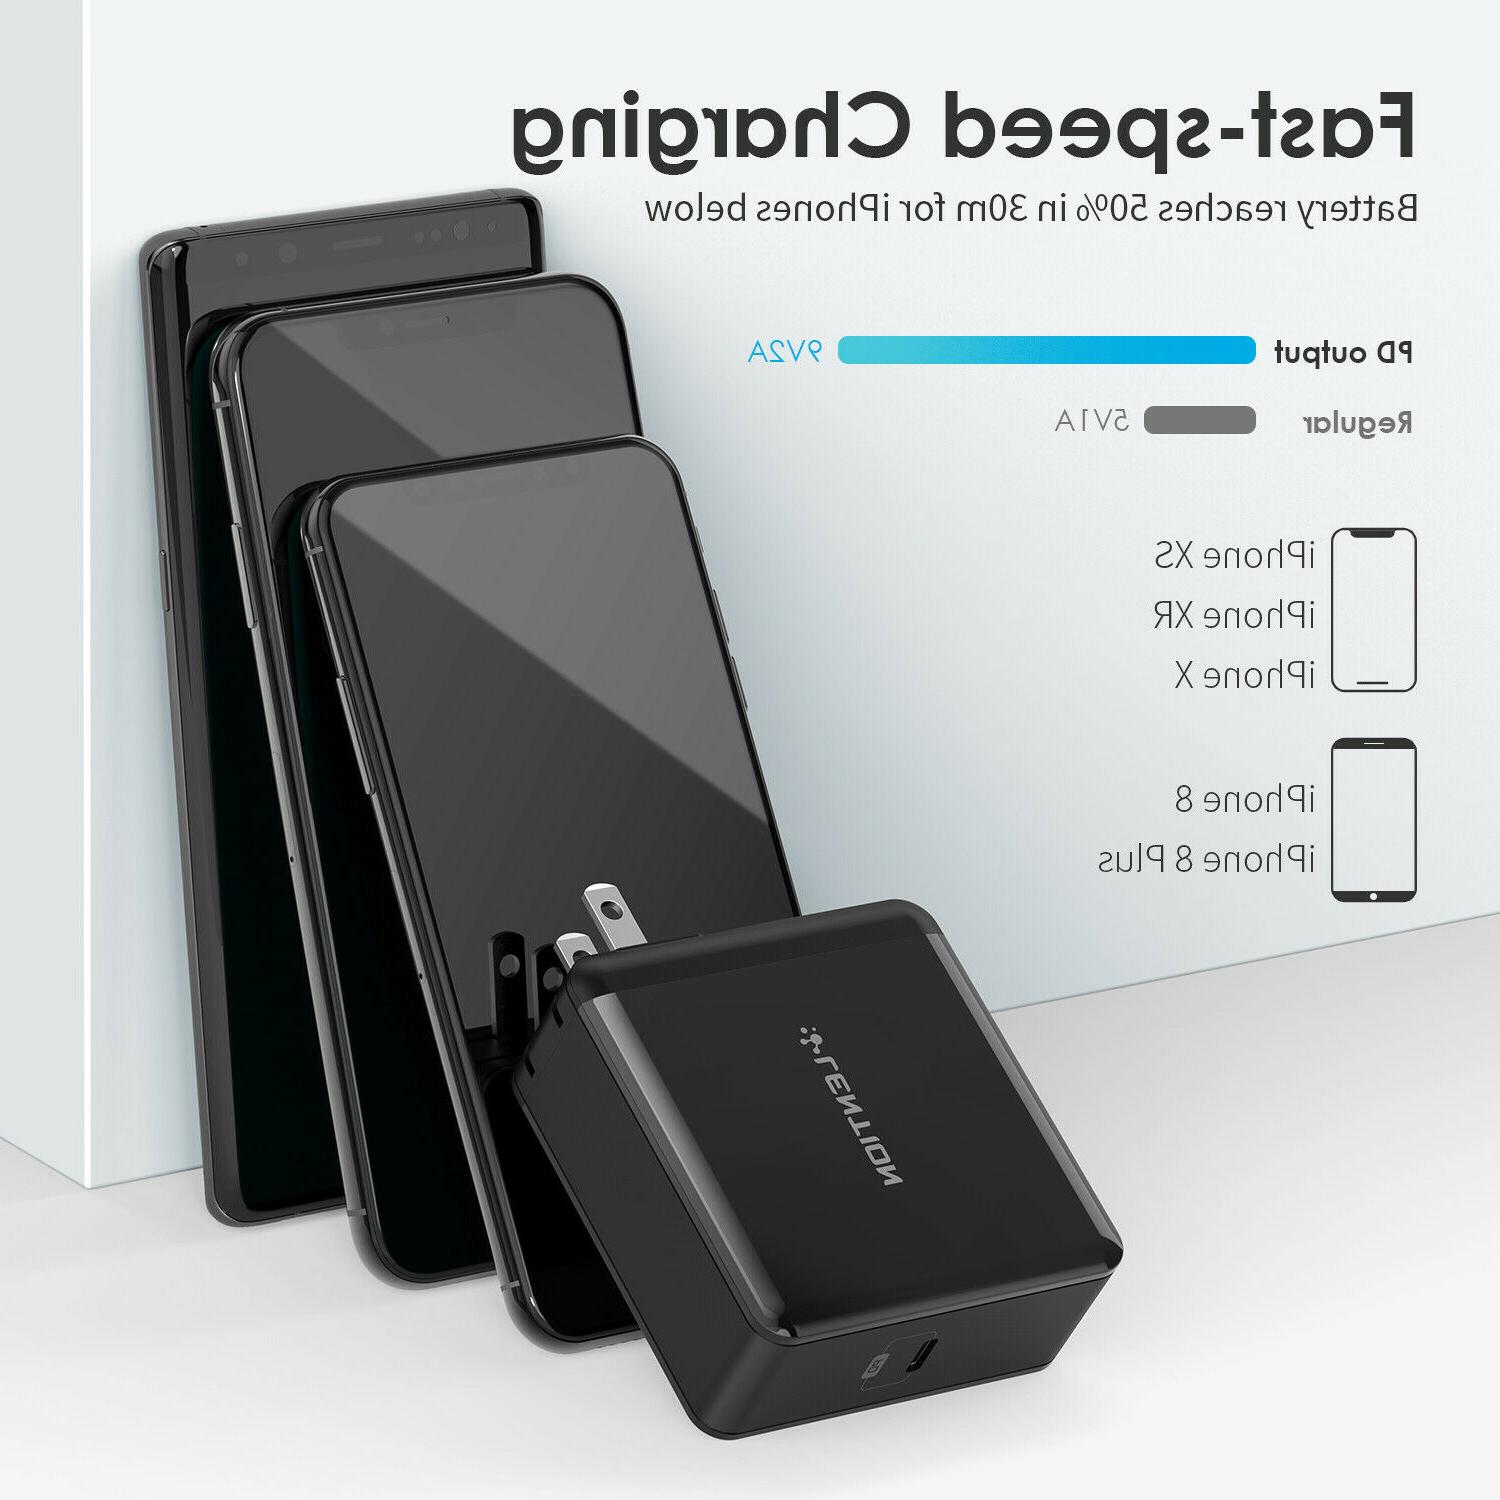 LENTION 60W USB-C Fast Wall PD iPhone